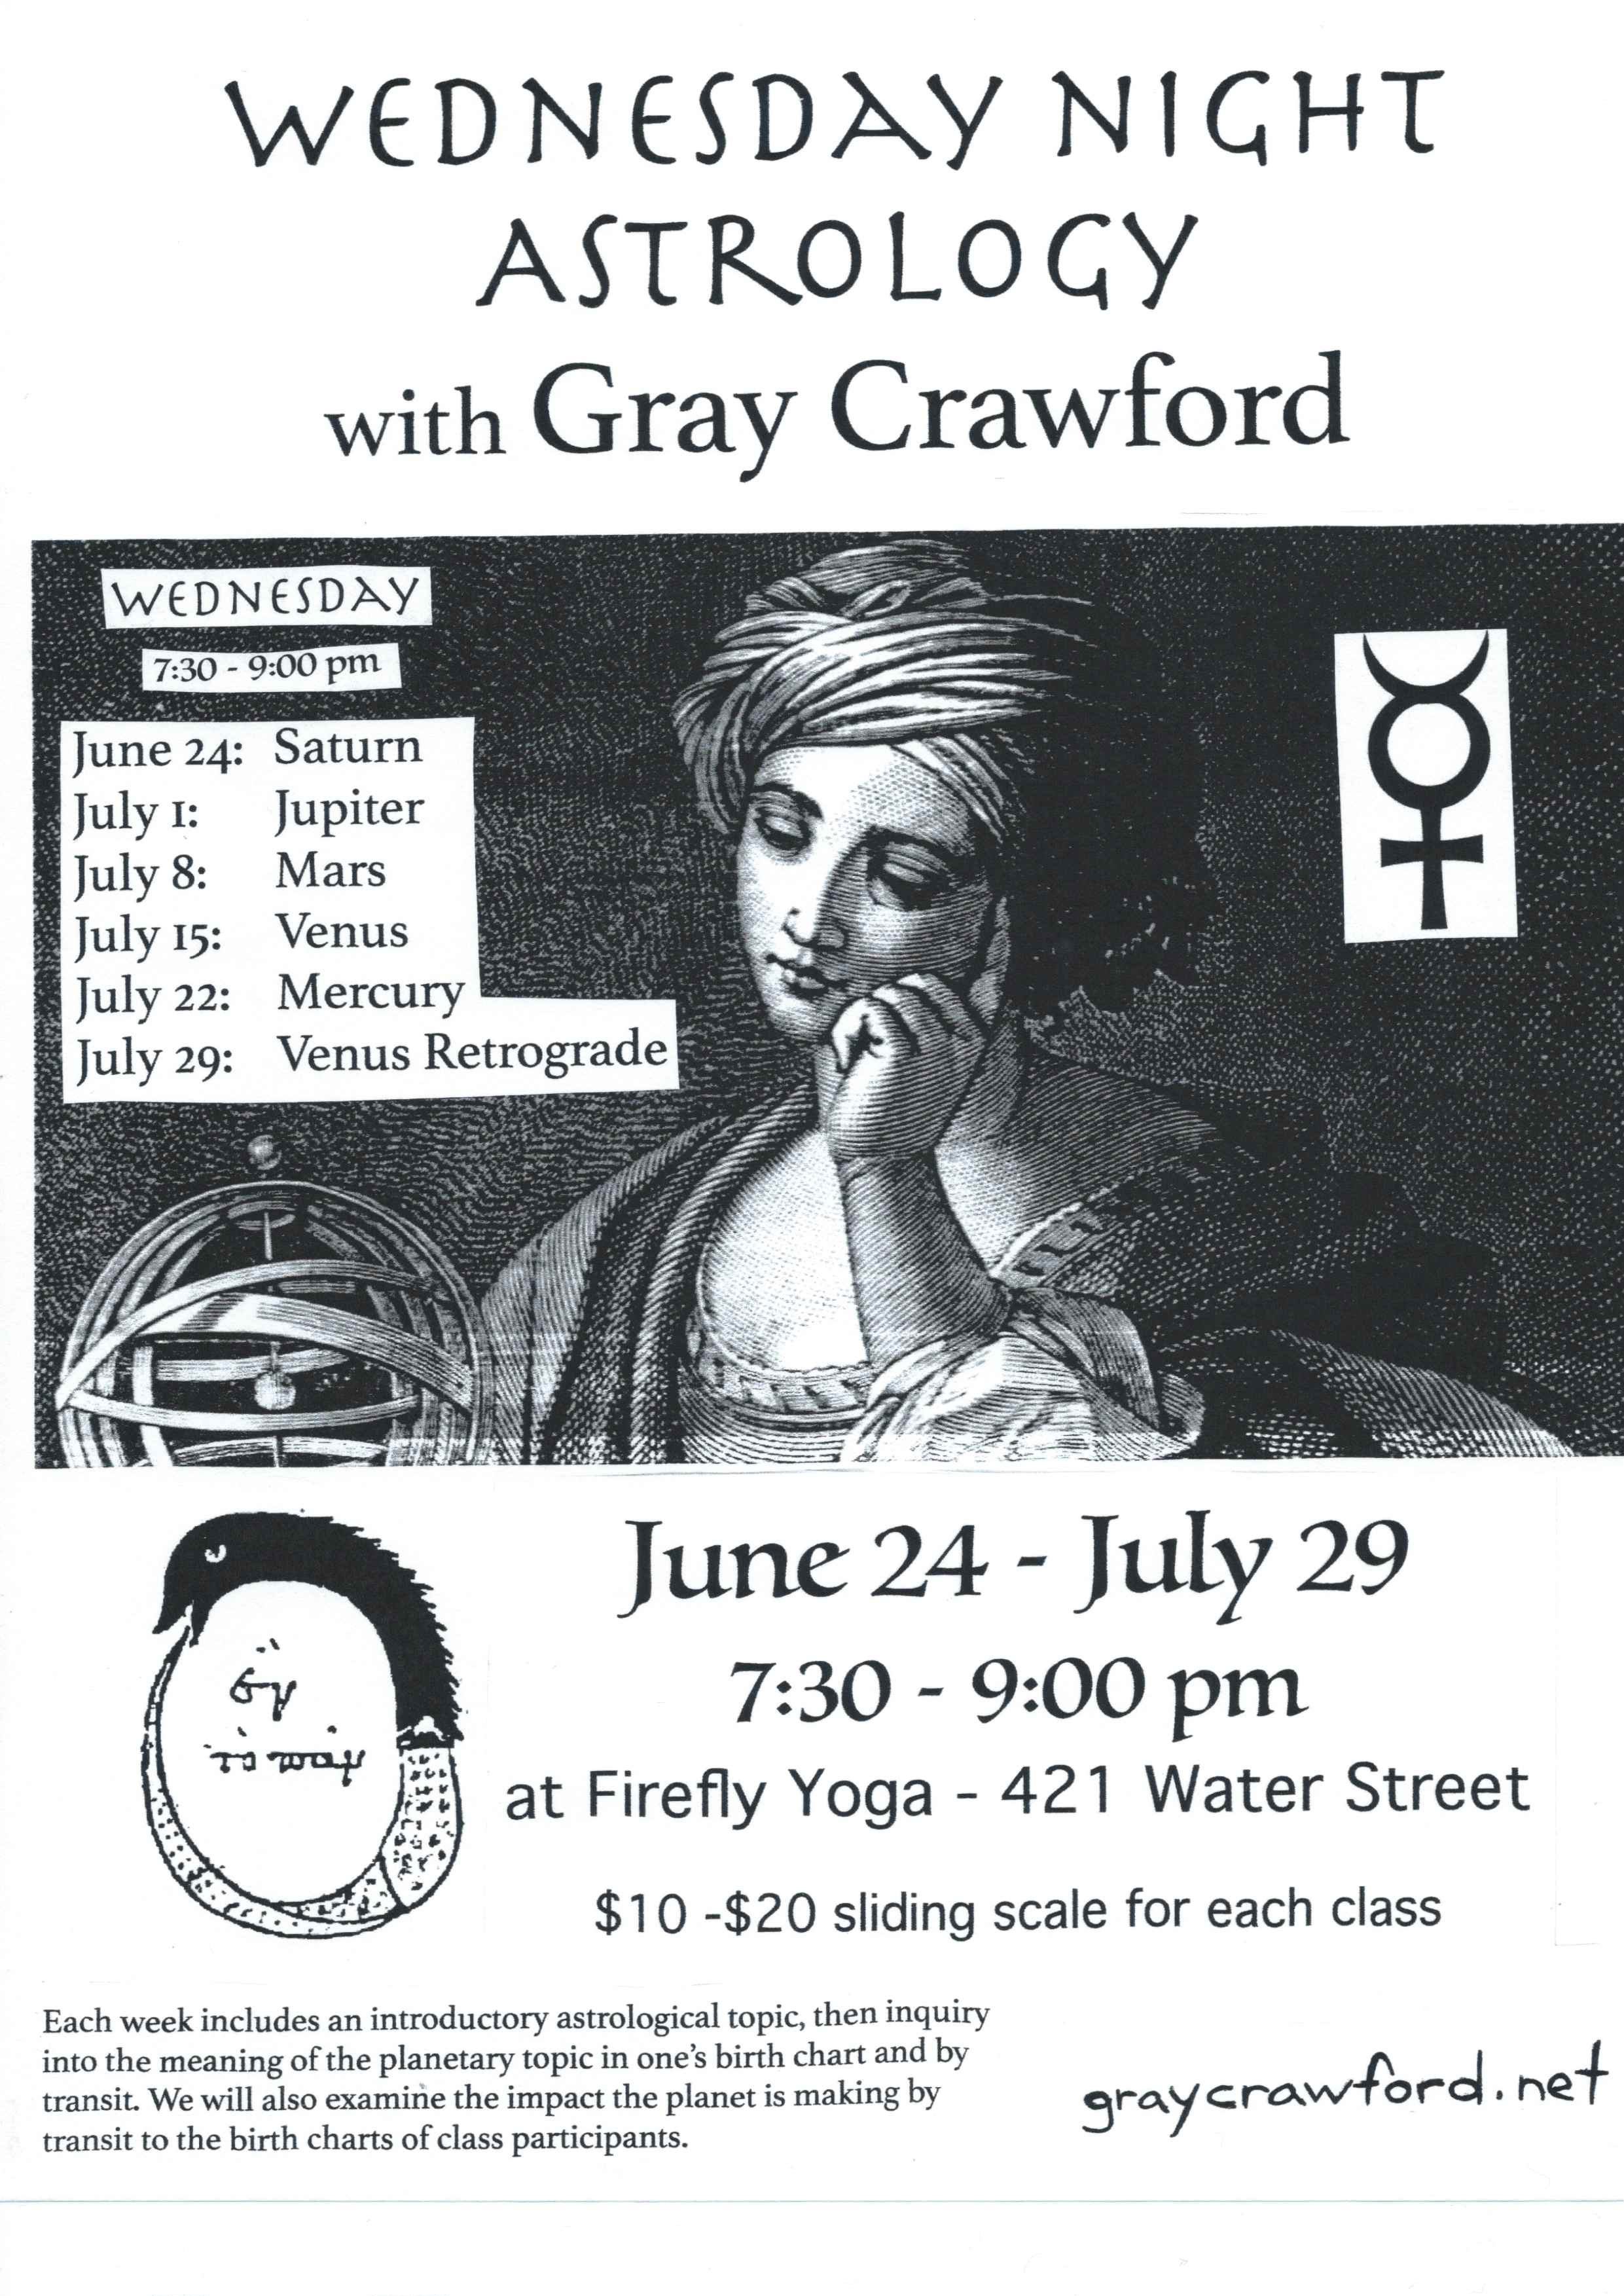 Astrology classes in olympia gray crawford wednesday night astrology class nvjuhfo Image collections